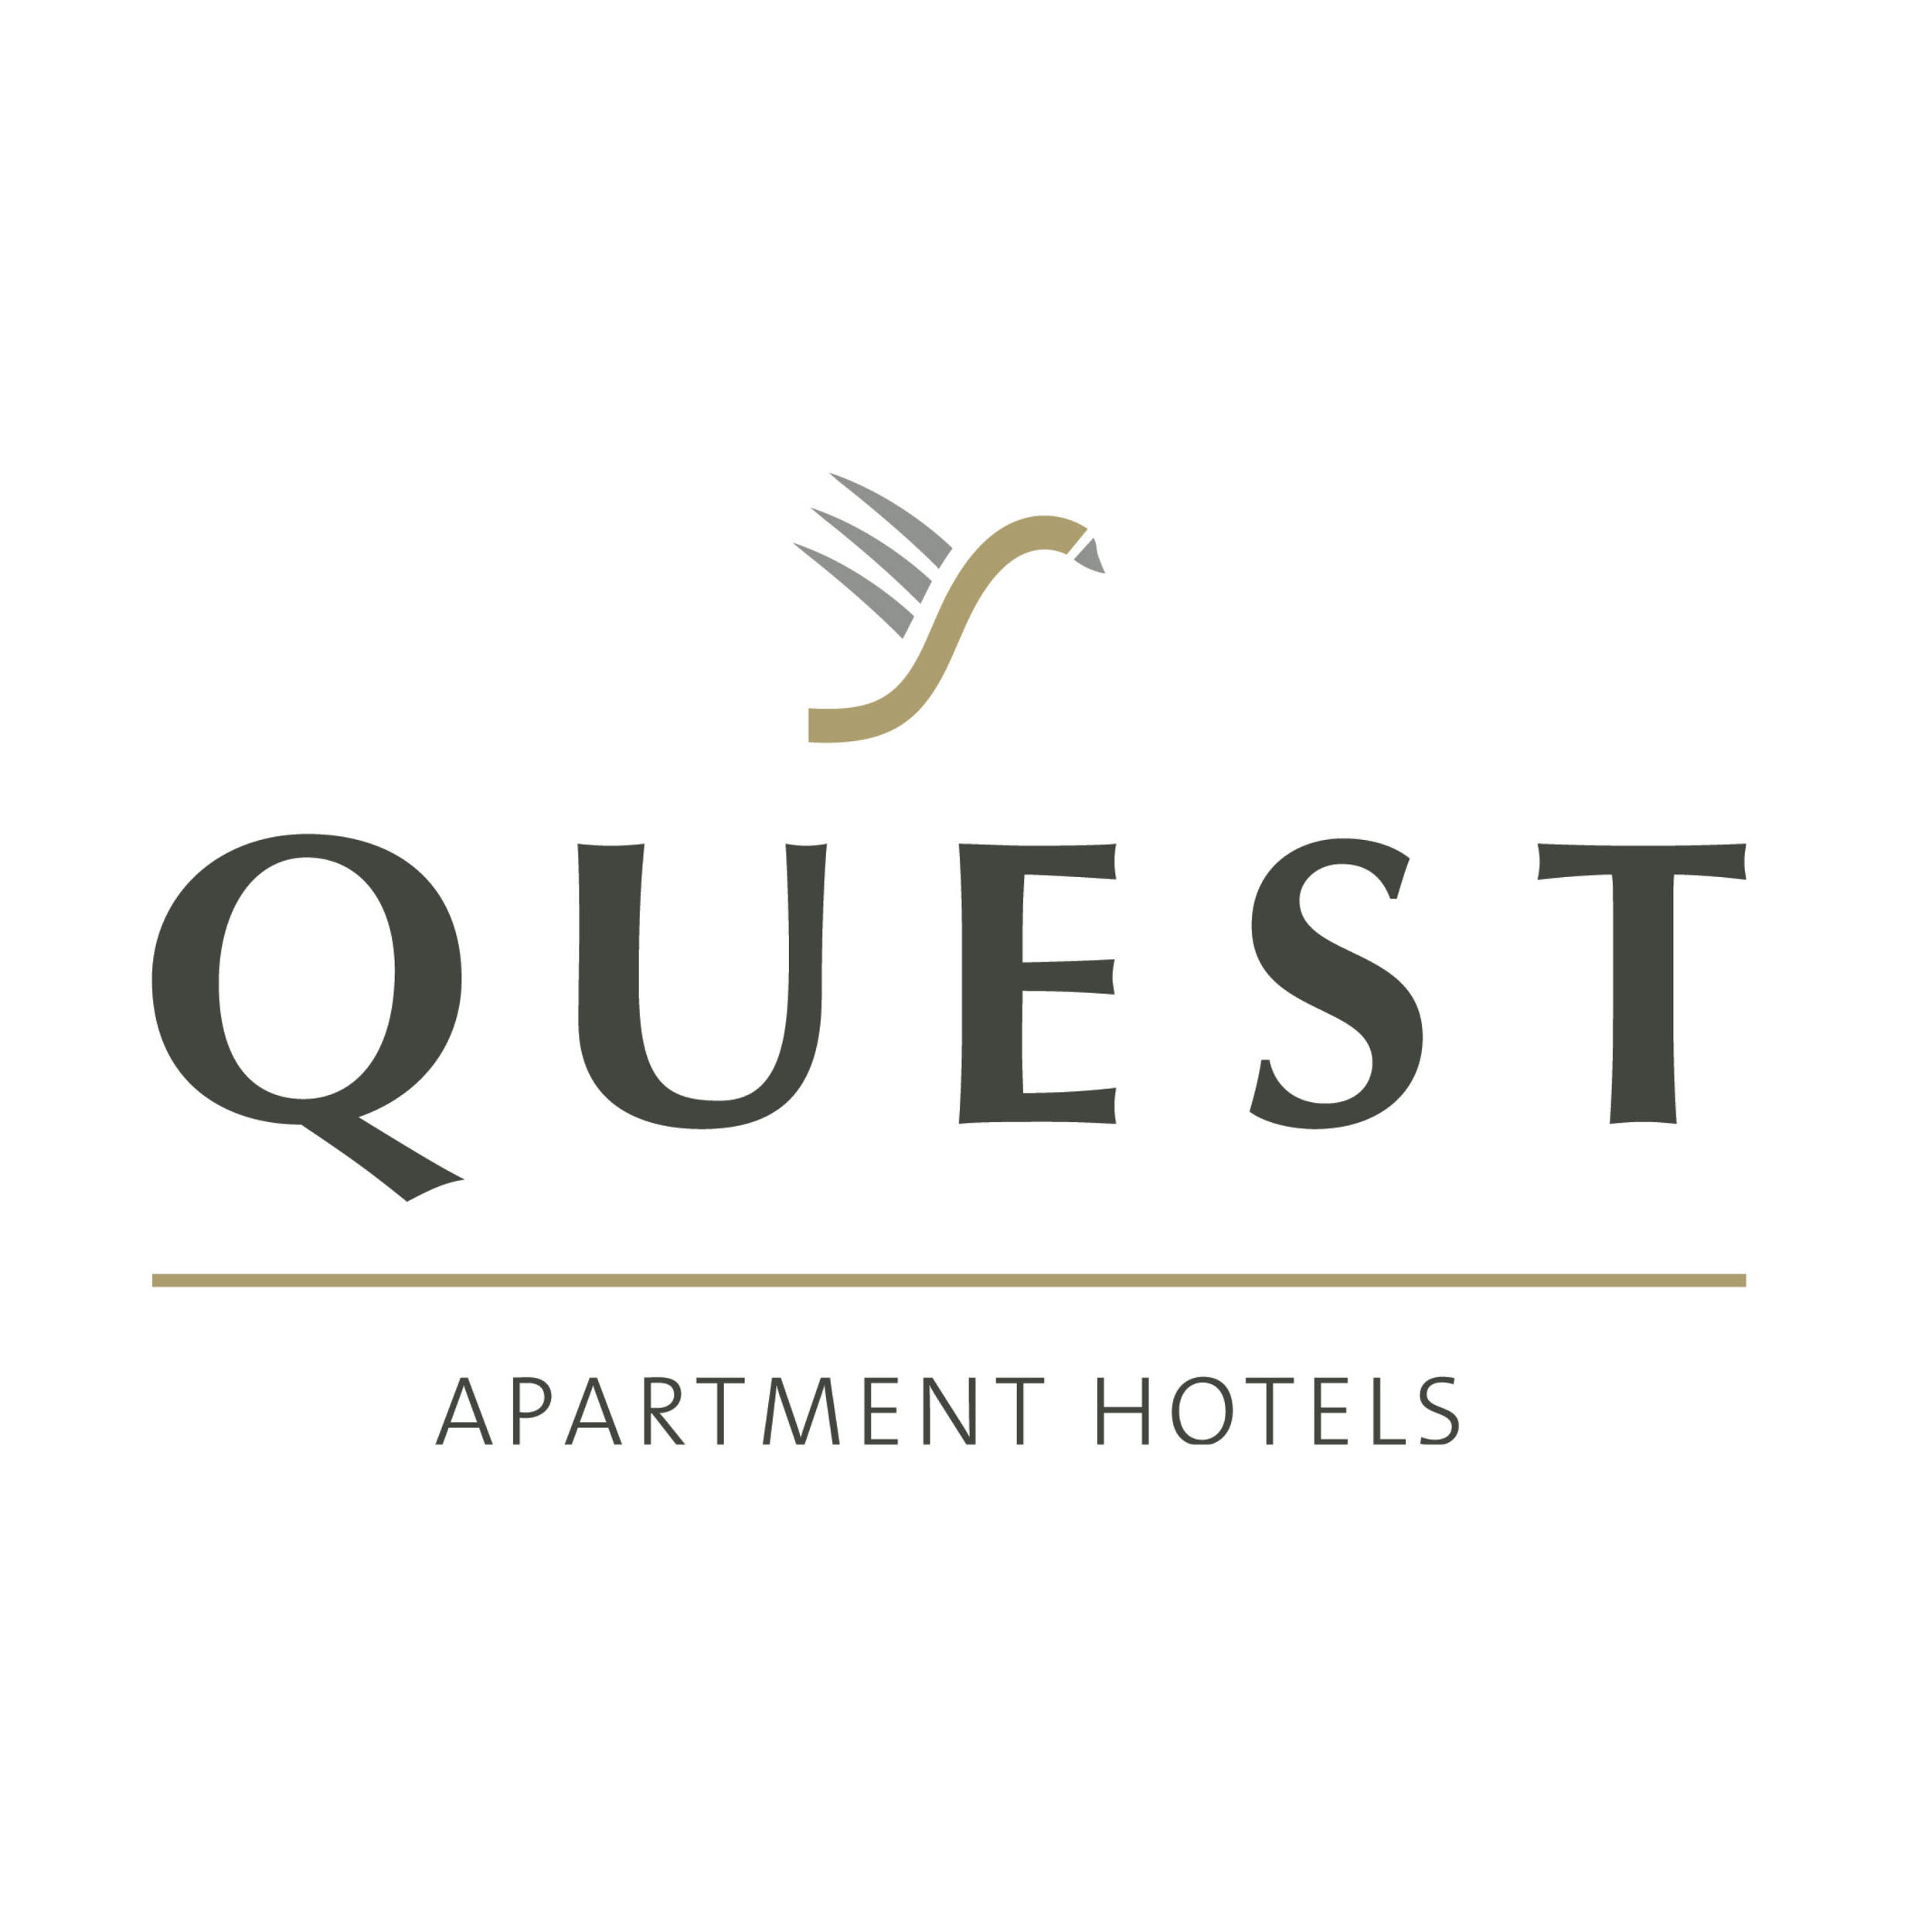 - Stay in comfort at Quest Apartments Griffith. Conveniently located opposite the main street of Griffith, simply stroll across the park, pick up a delicious coffee, then head down the lane way to take in the artwork.